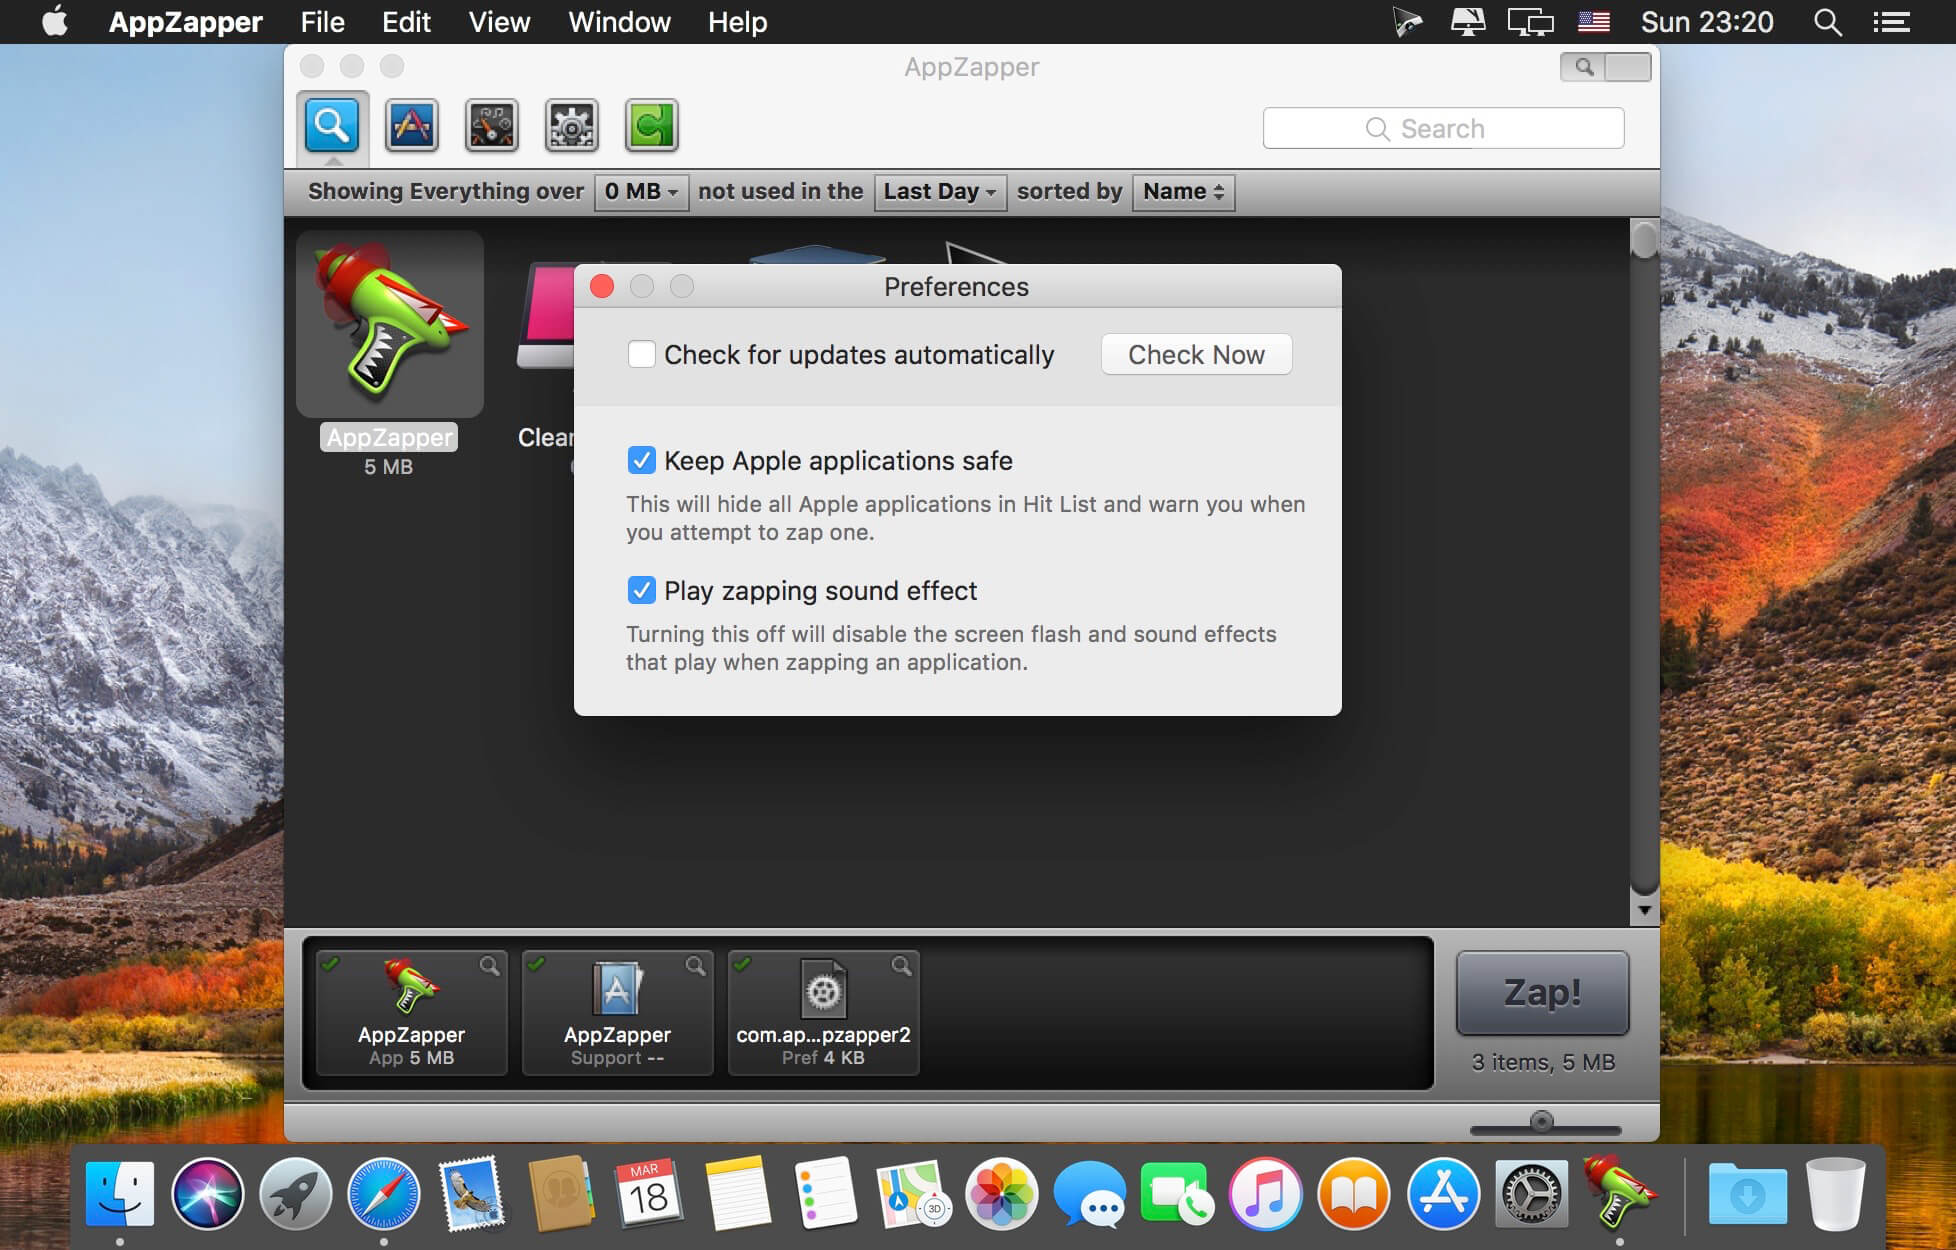 appzapper mac os x